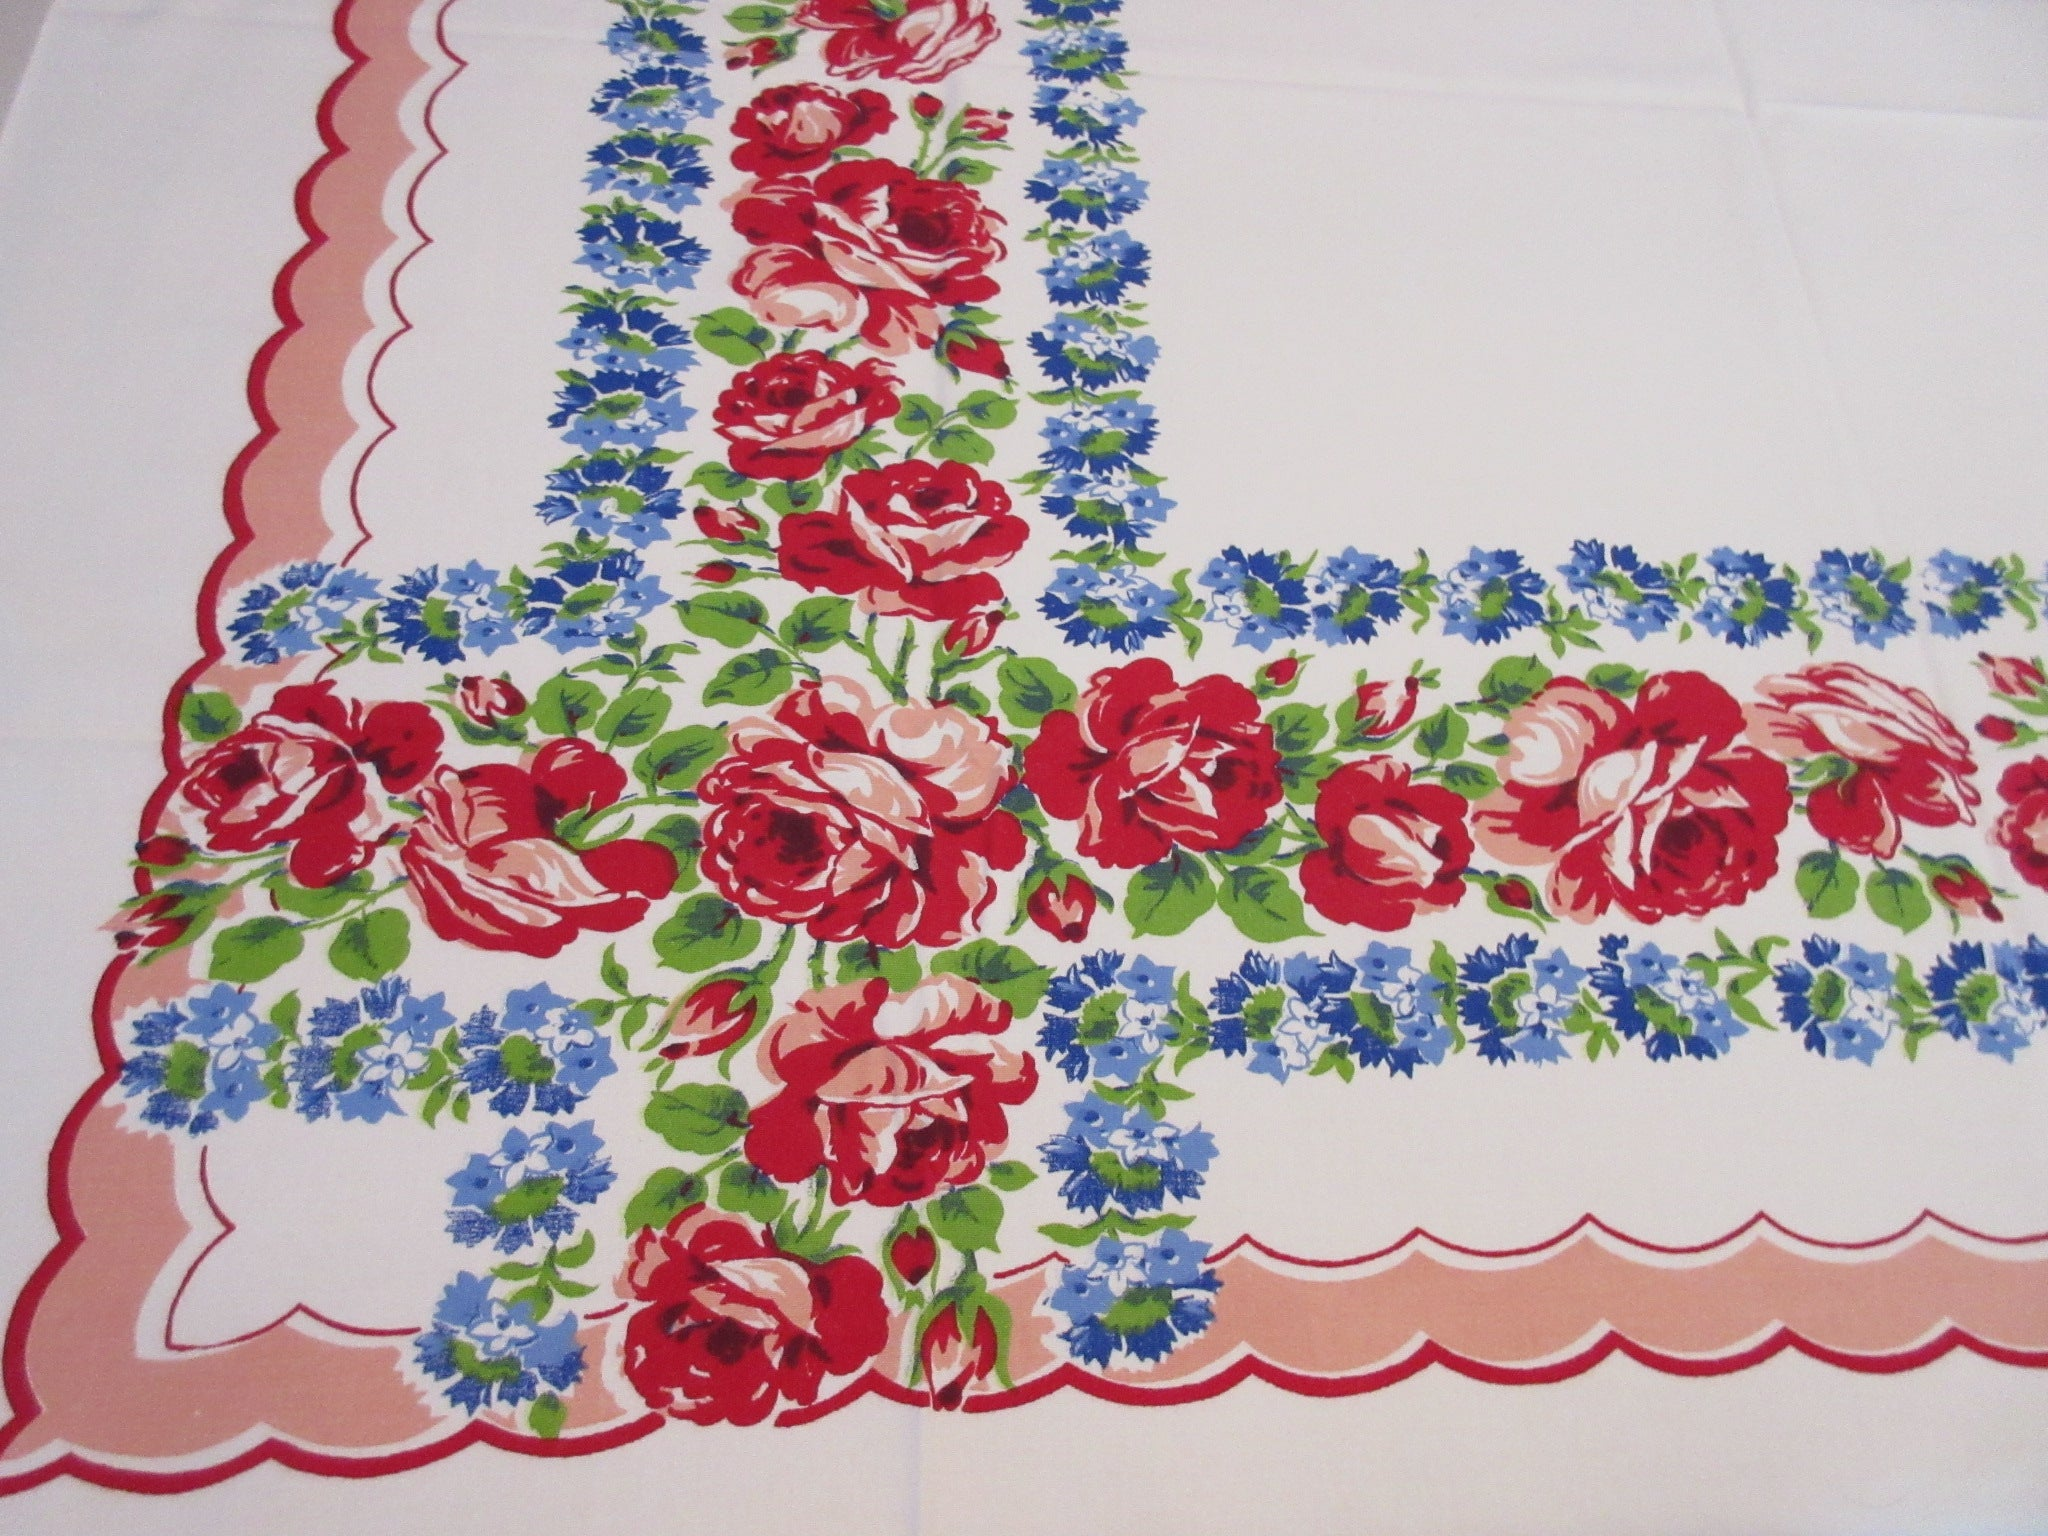 Pink Roses Blue Delphiniums on Pink Scallops Floral Vintage Printed Tablecloth (52 X 46)